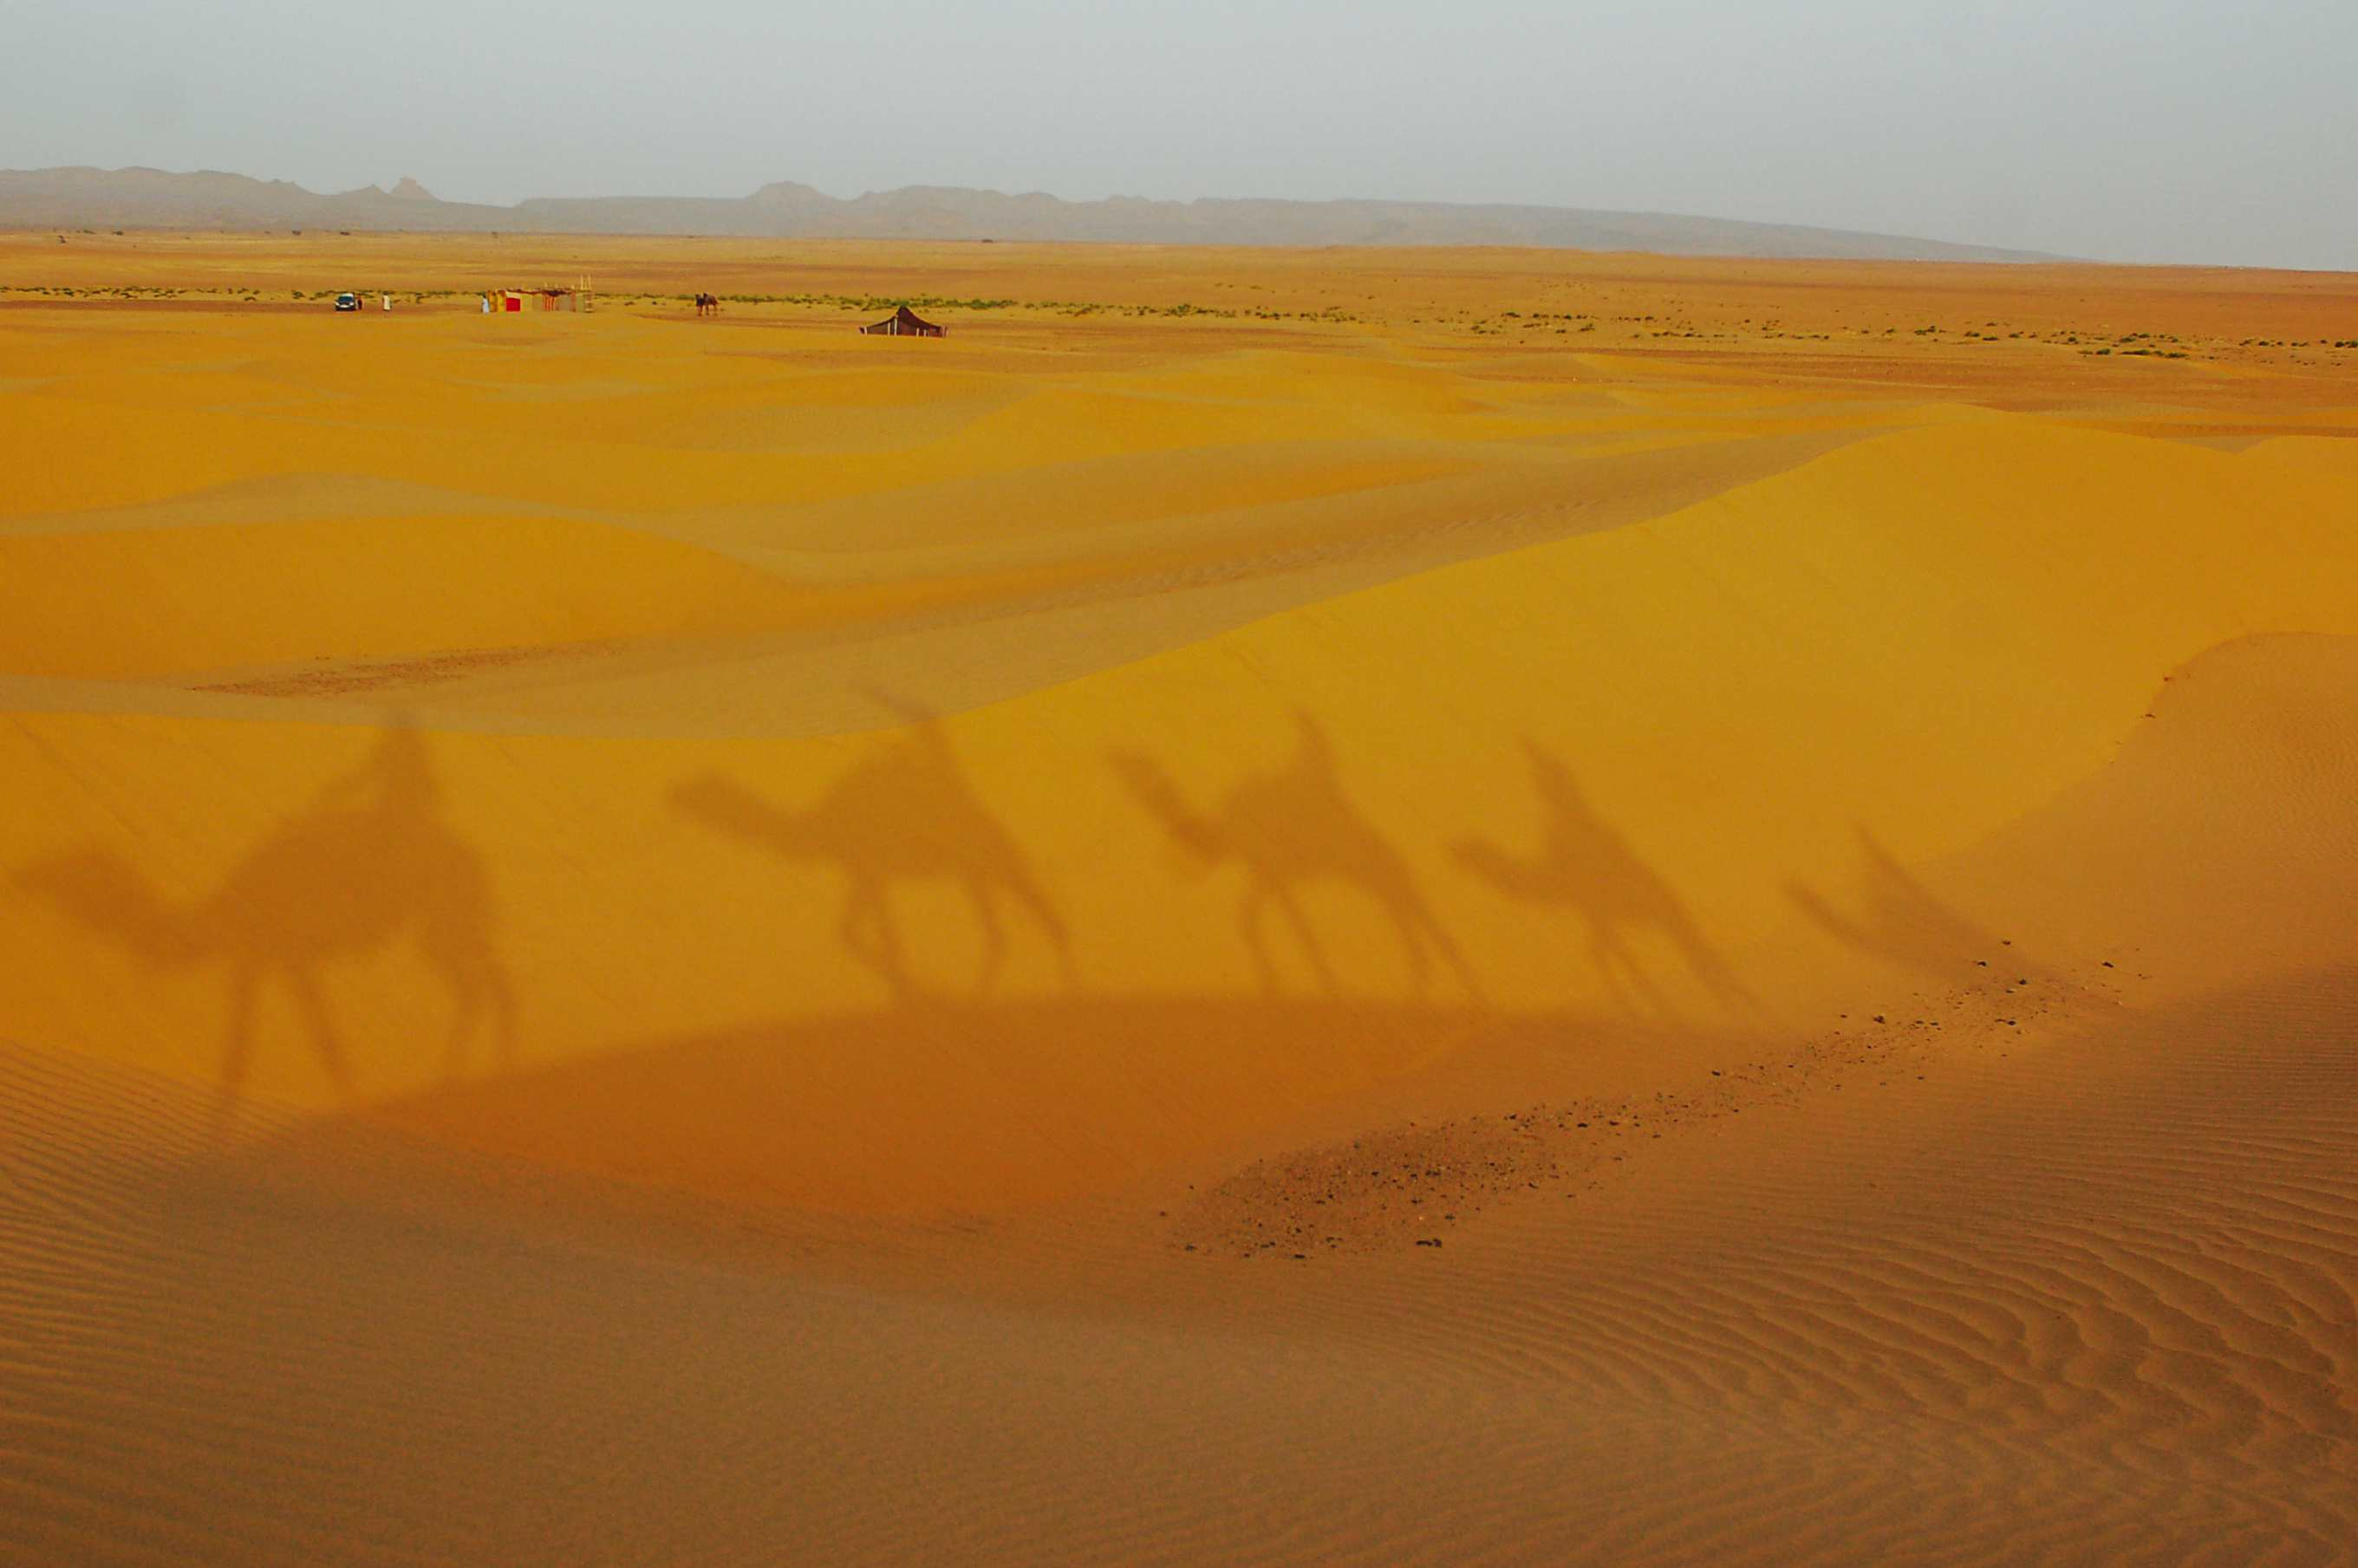 Shadows from camels crossing the sahara desert